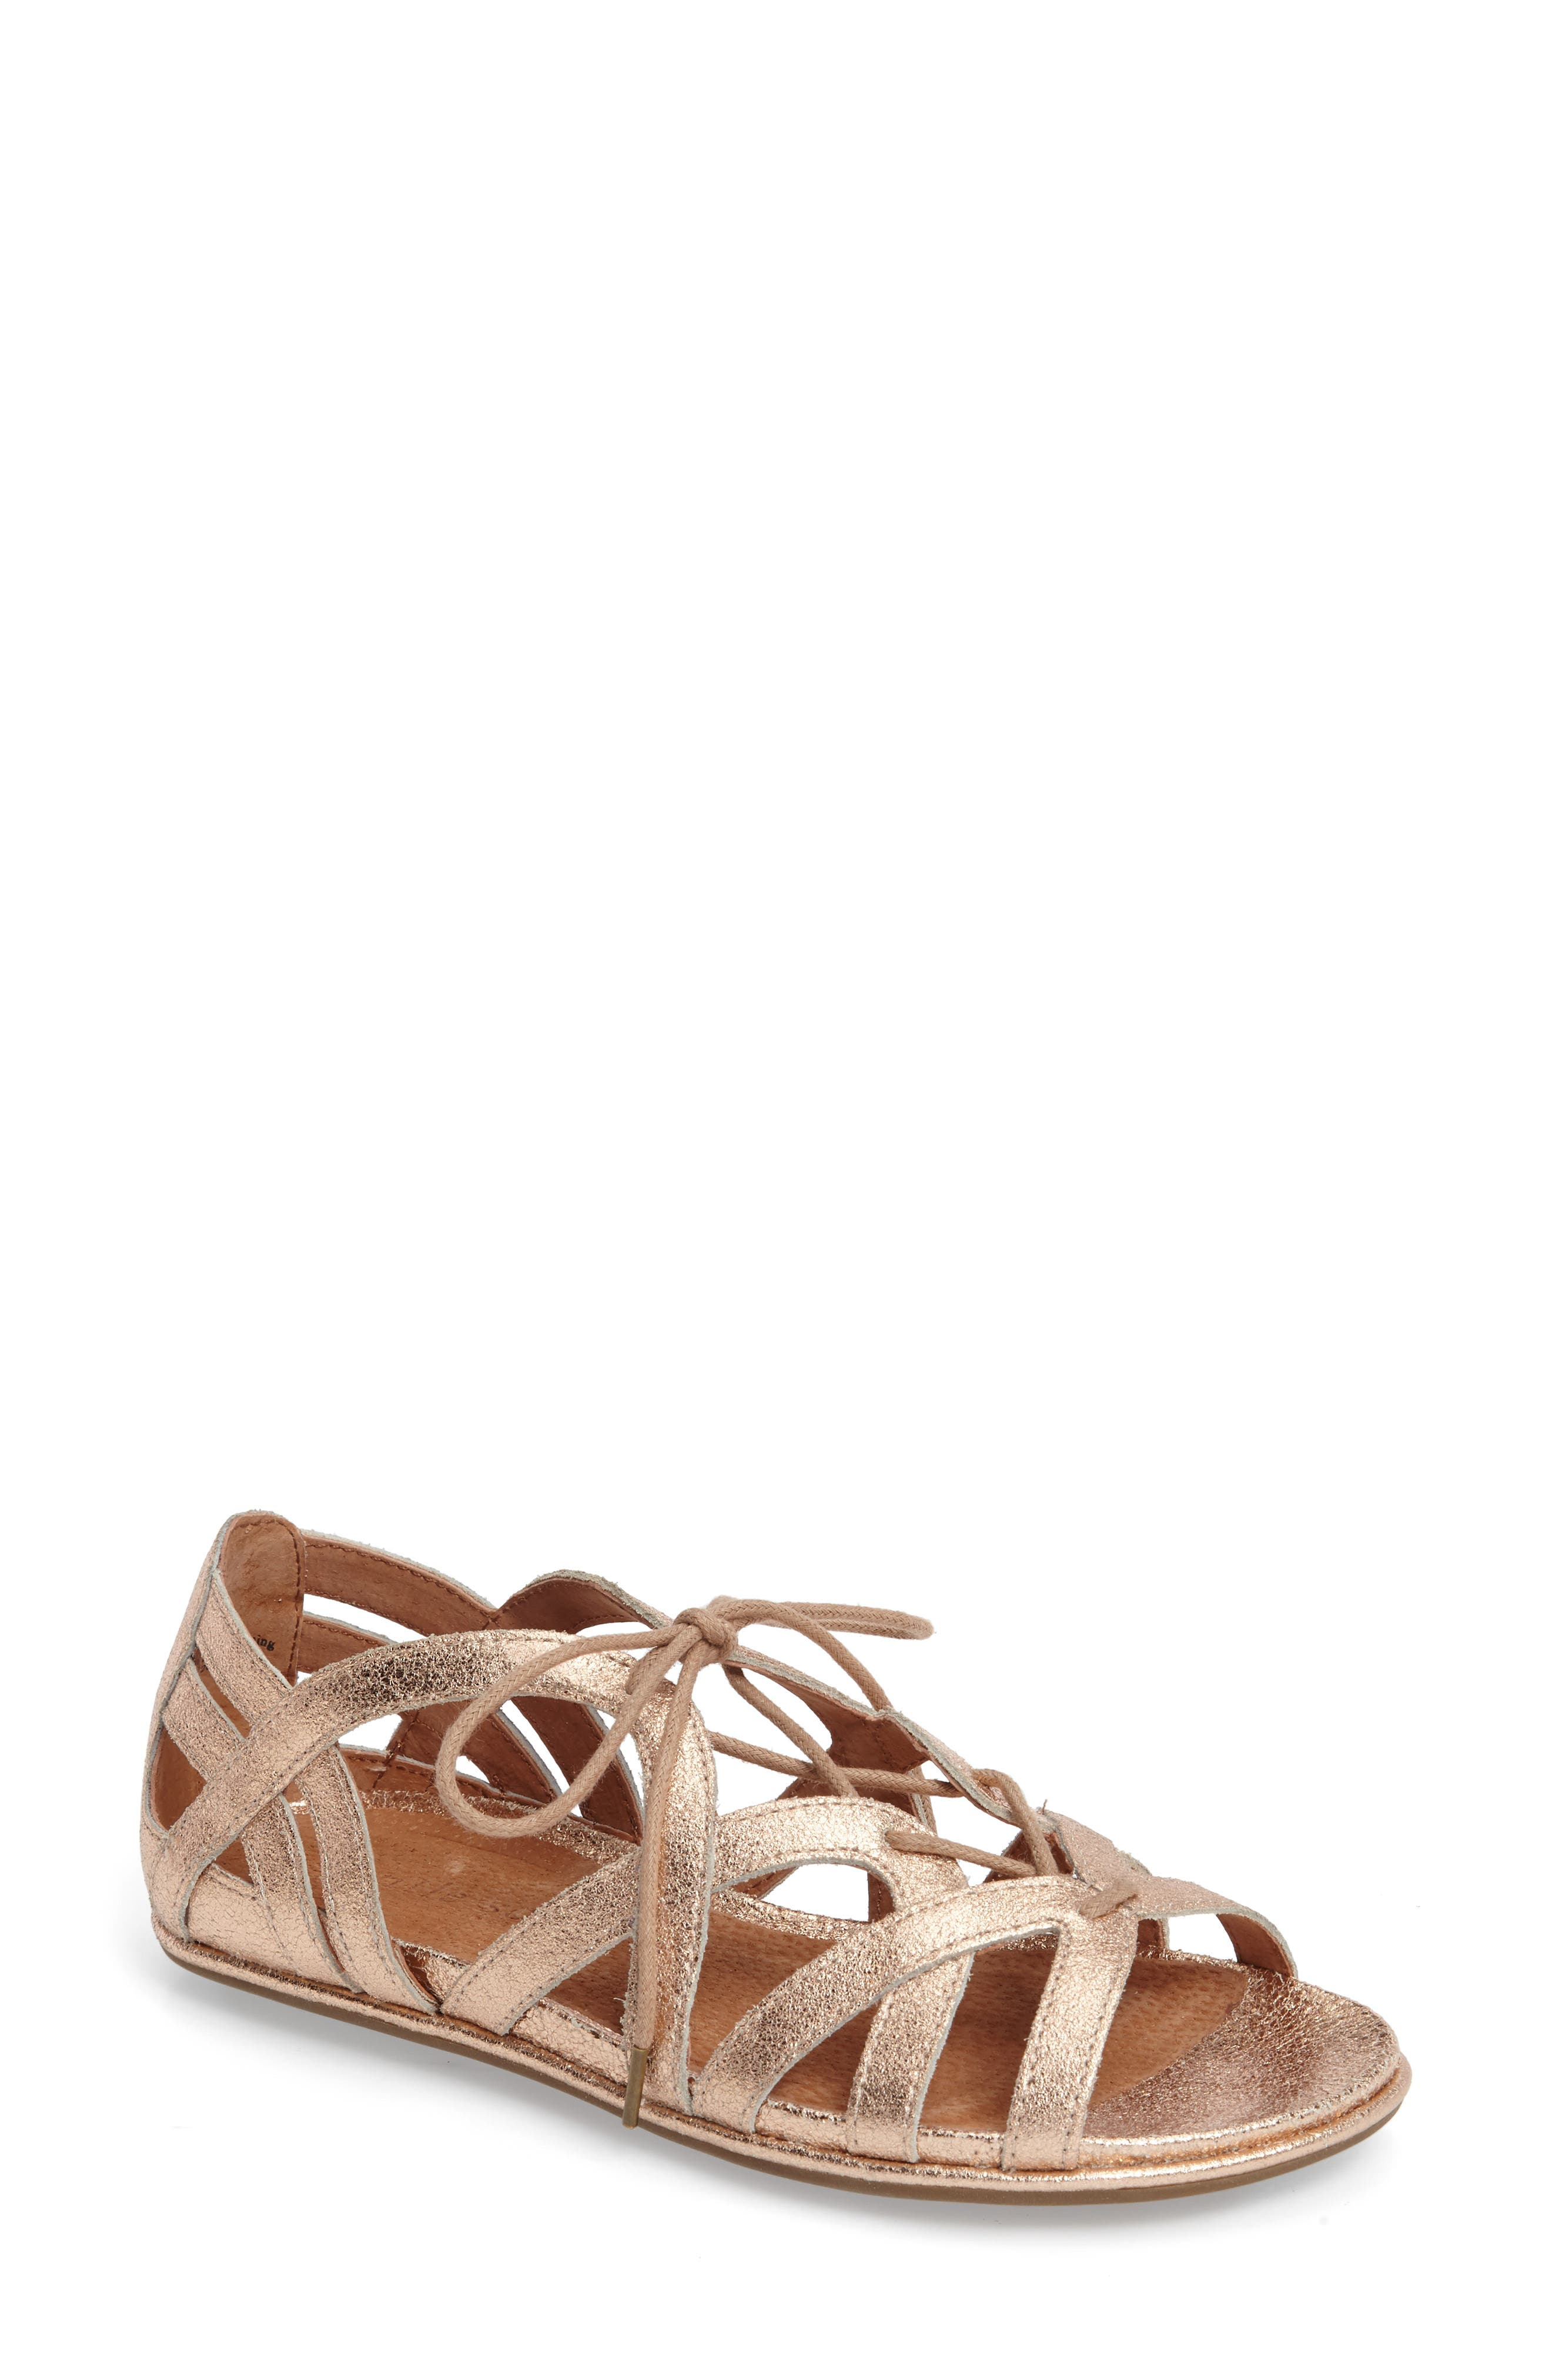 Alternate Image 1 Selected - Gentle Souls 'Orly' Lace-Up Sandal (Women) (Nordstrom Exclusive)